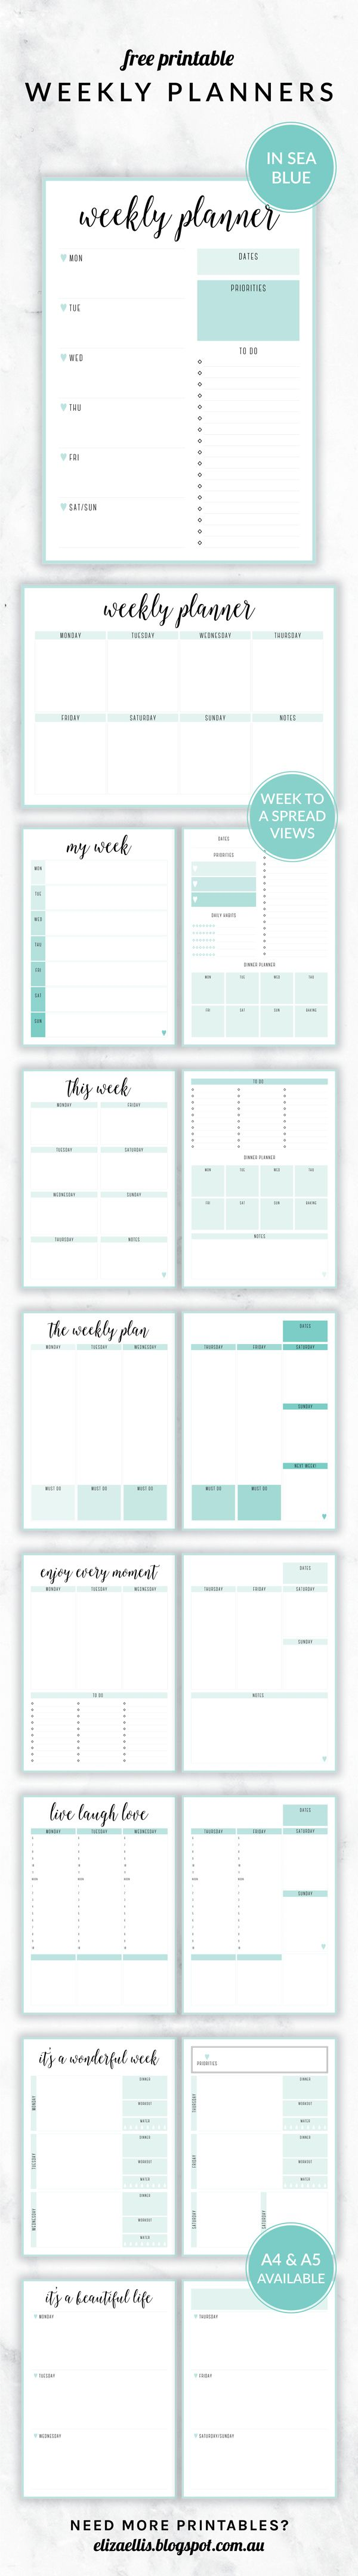 Free Printable Irma Weekly Planners in the color Sea by Eliza Ellis. With nine different styles, theyre the perfect organizing solution for mums, entrepreneurs, bloggers, etsy sellers, professionals, WAHMs, SAHMs, students and moms. Available in 6 colors and both A4 and A5 sizes. Includes week to a page planners as well as week to a spread and two page planners. Enjoy!